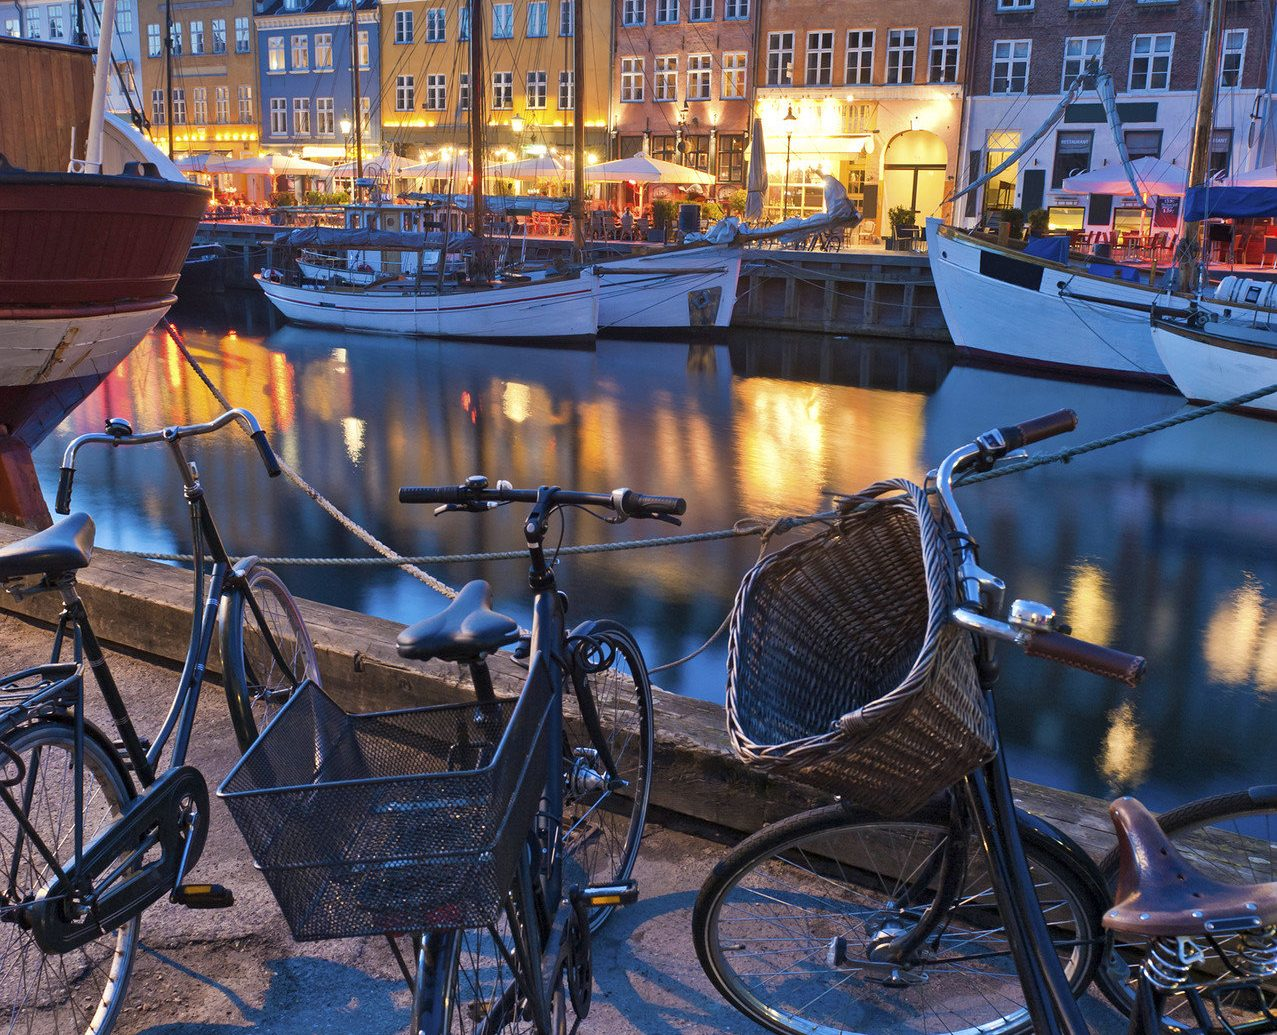 Trip Ideas outdoor sky bicycle vehicle Town City urban area human settlement Winter season cityscape evening waterway tourism parked street snow Canal